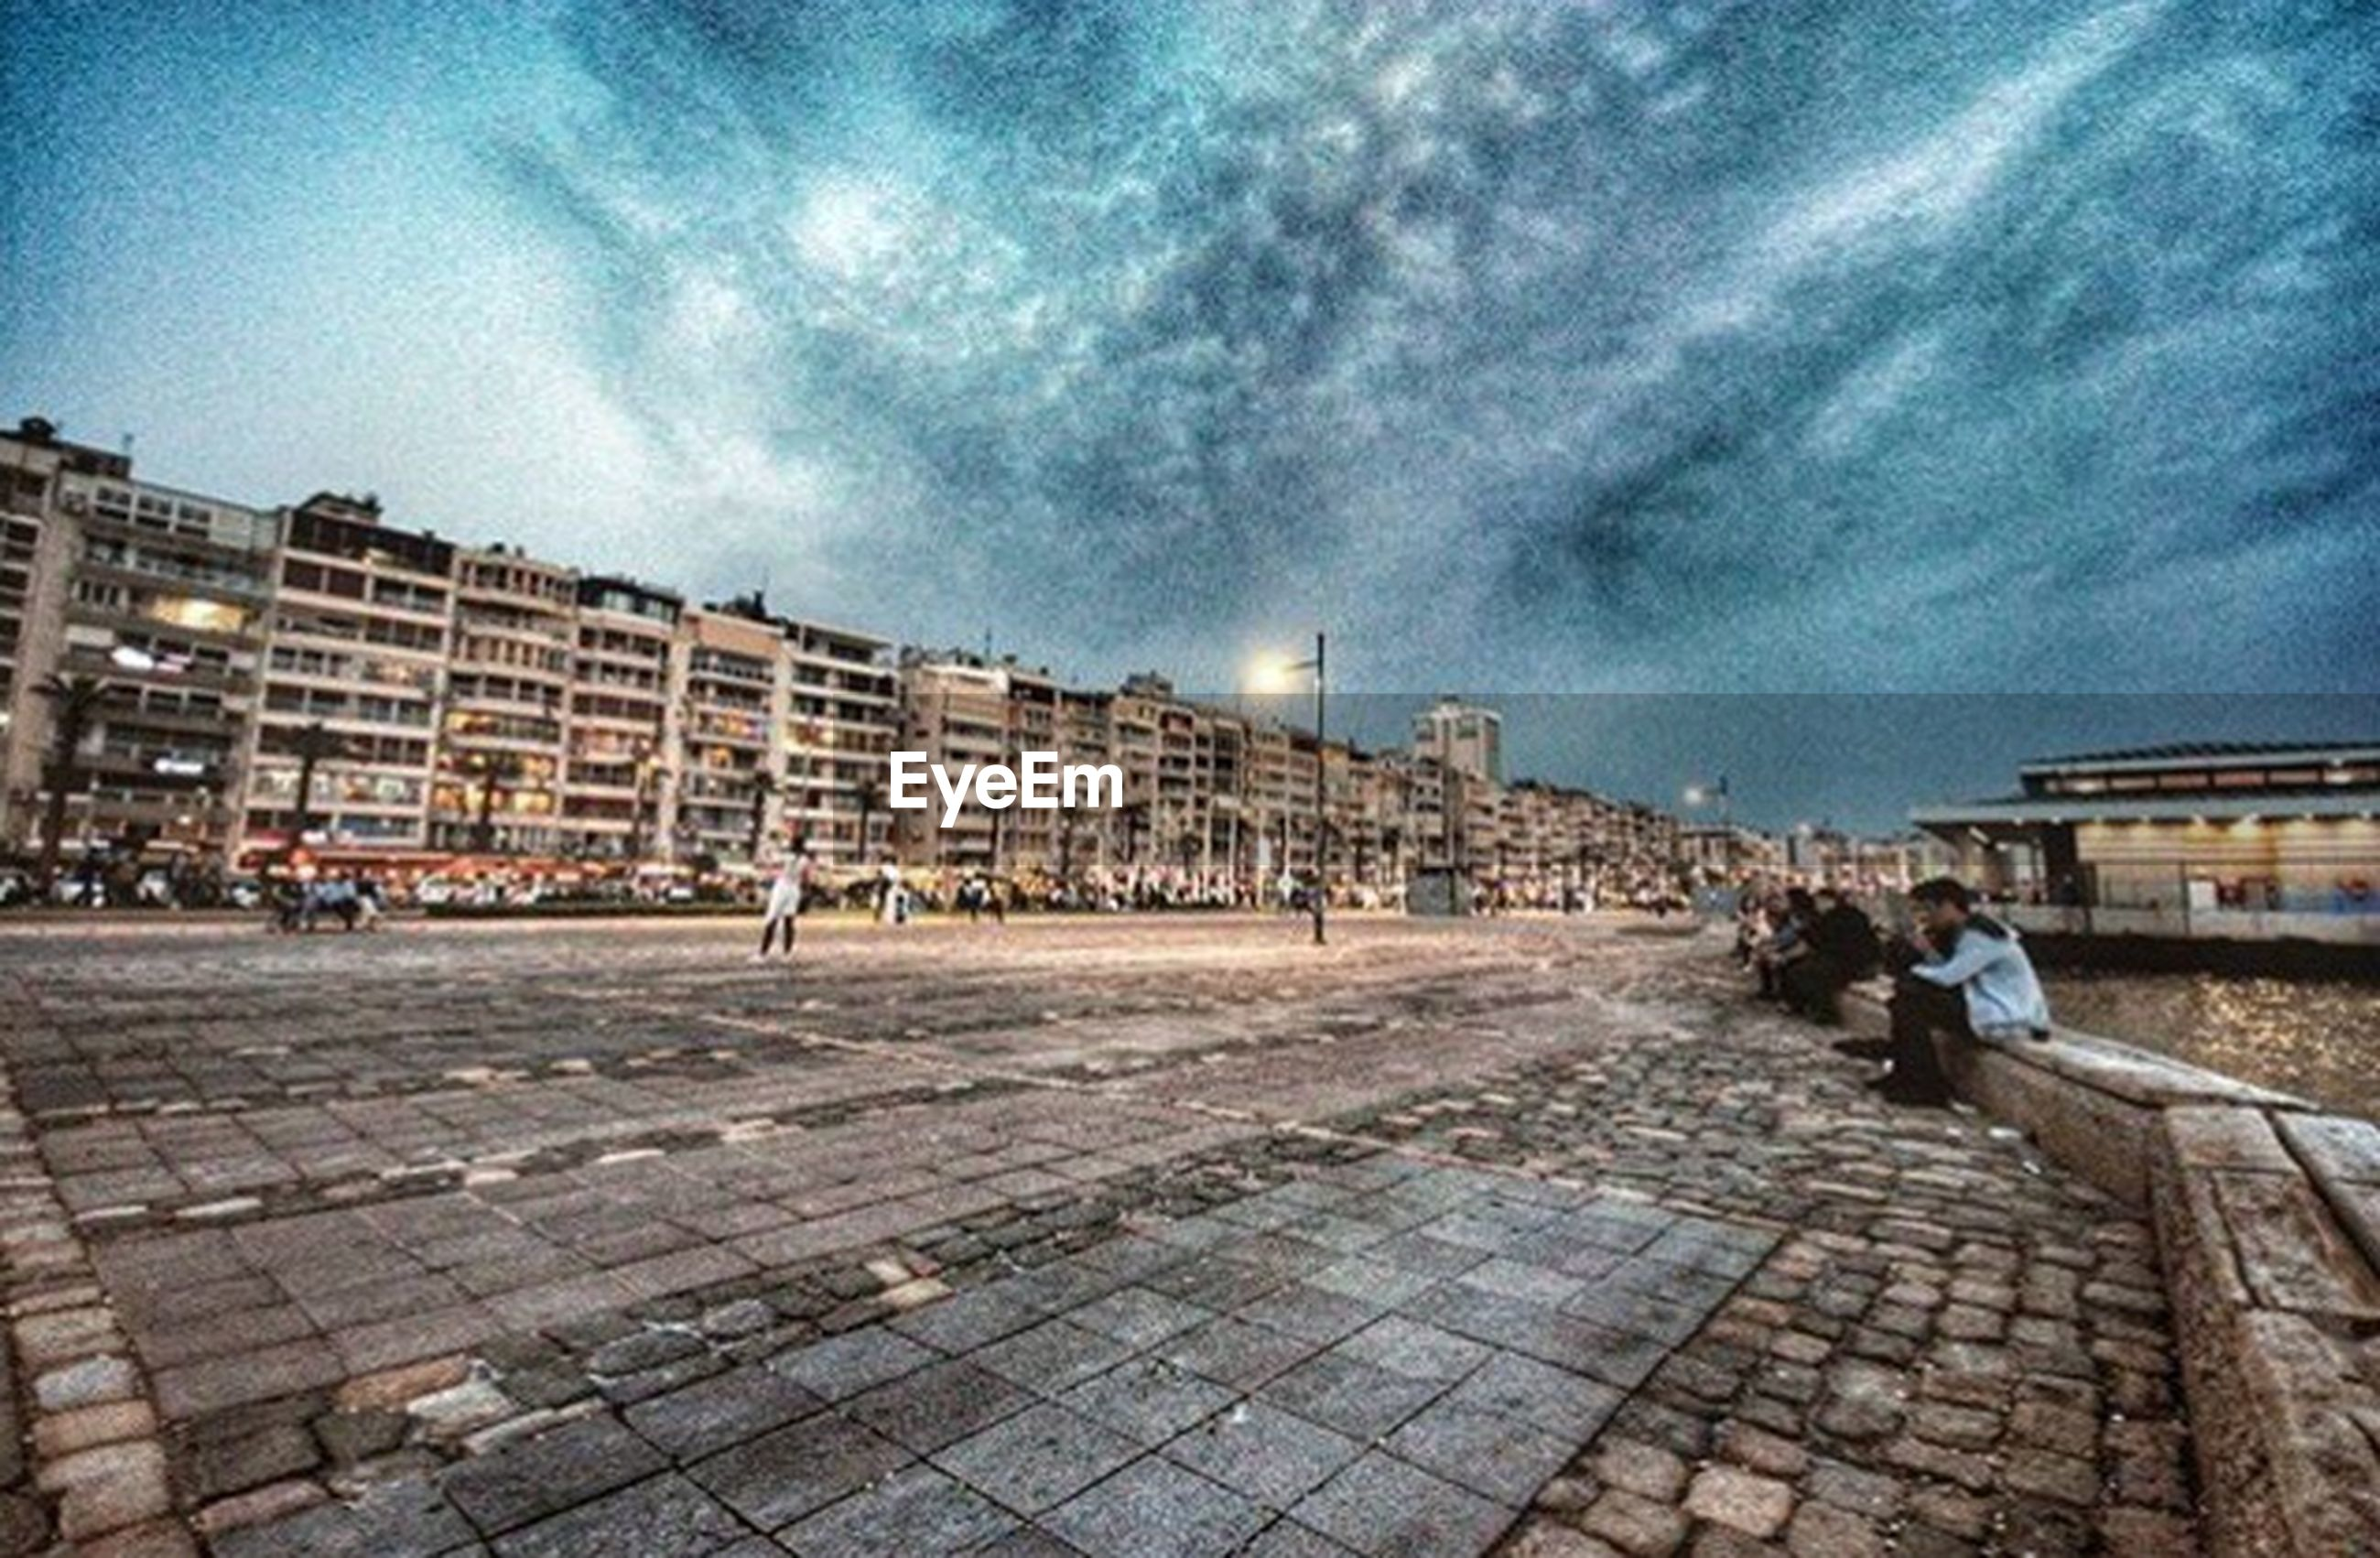 architecture, building exterior, built structure, sky, city, incidental people, cloud - sky, travel destinations, paving stone, day, outdoors, cloudy, development, city life, in front of, surface level, footpath